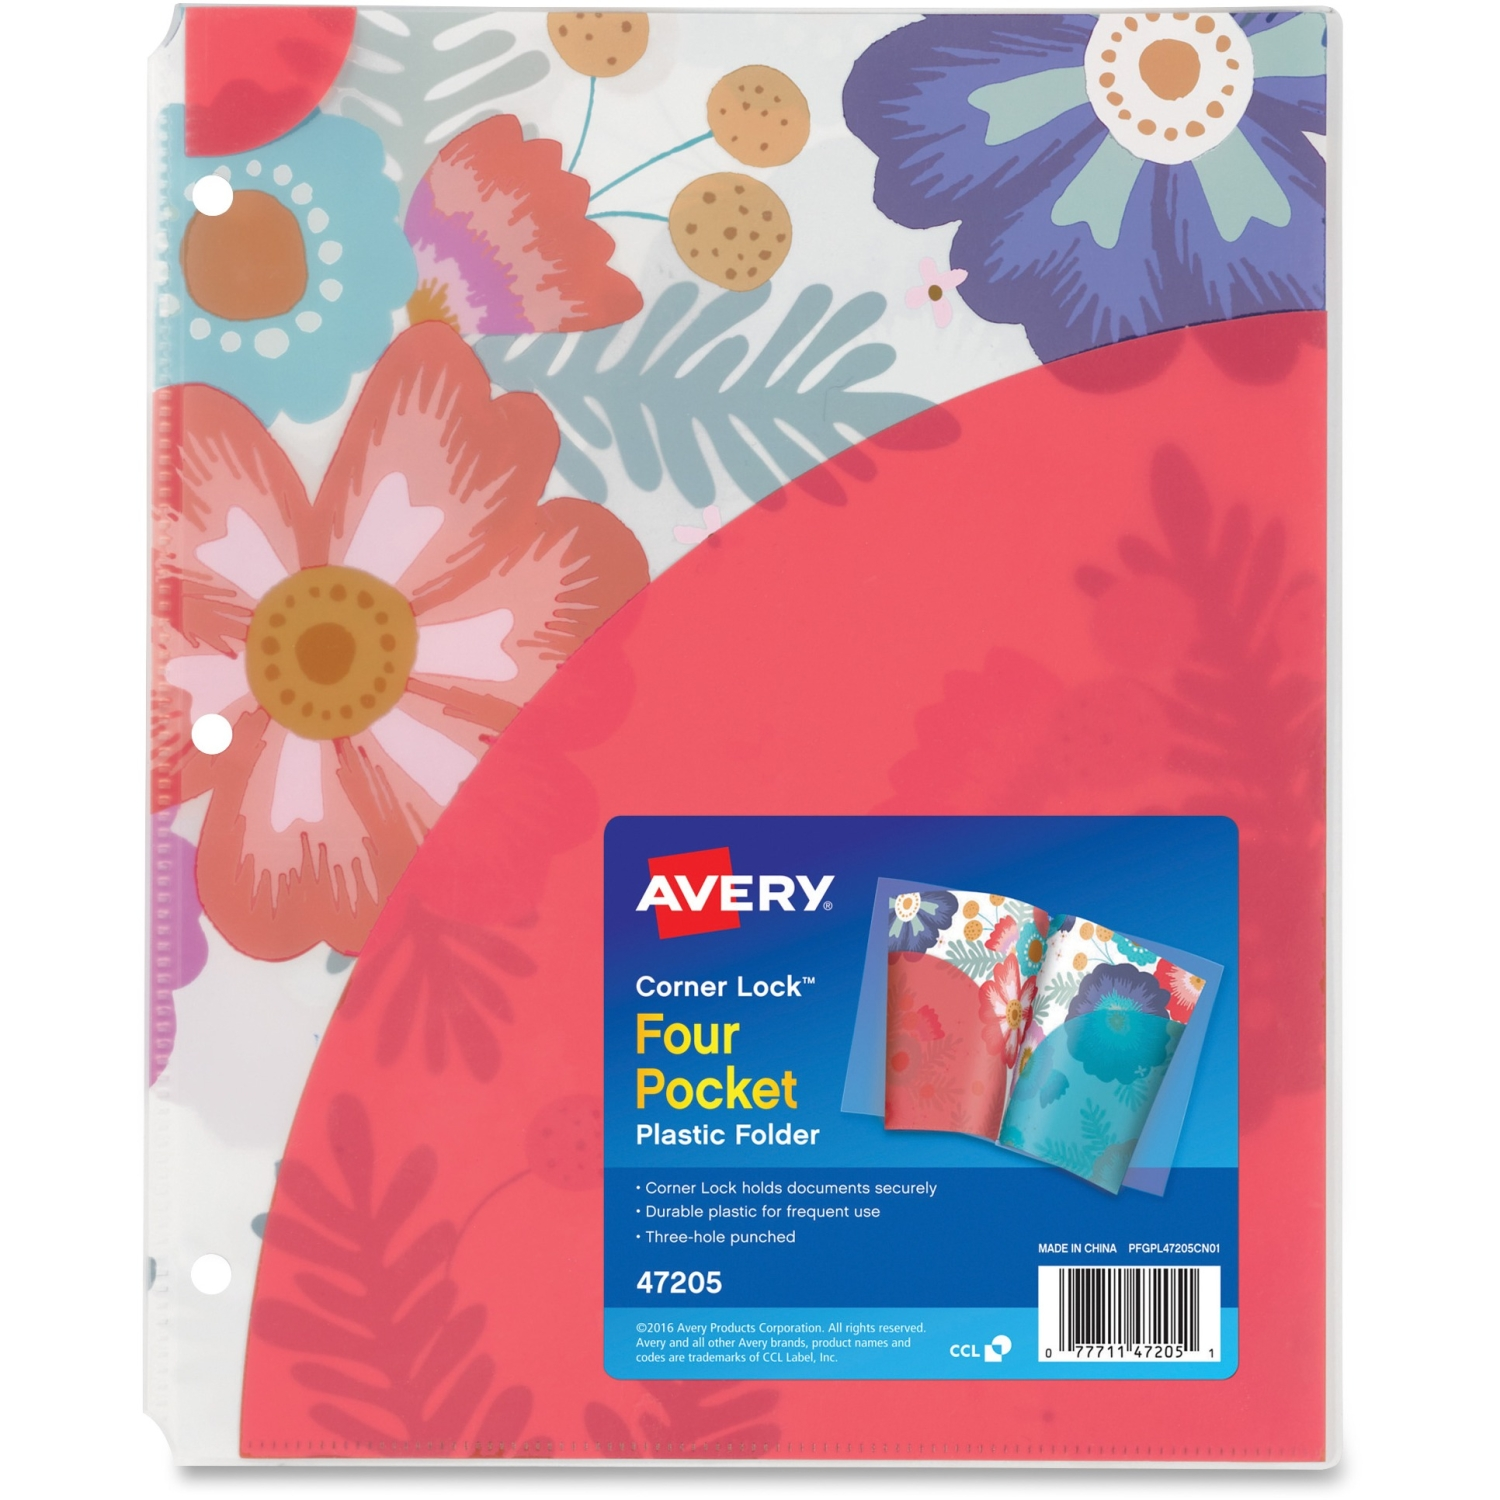 Avery  Corner Lock  Four-Pocket Plastic Folder 47205, Floral, 1 Folder